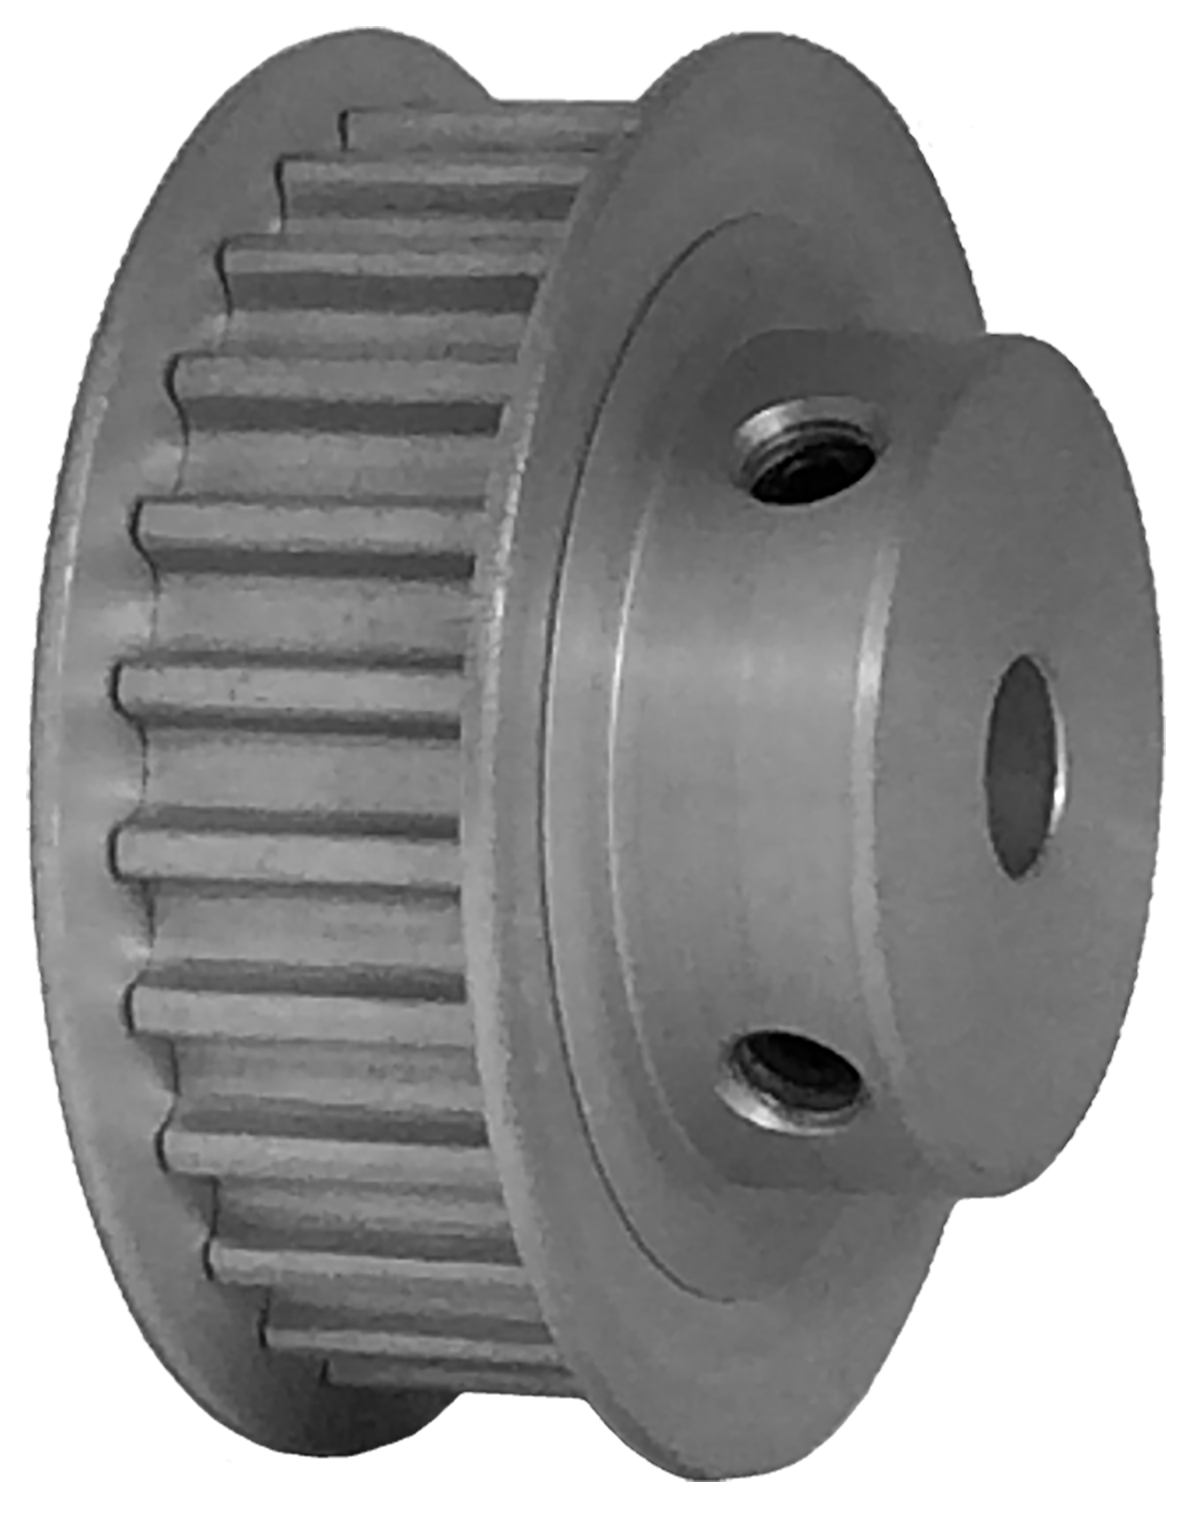 25-5M09-6FA3 - Aluminum Powerhouse®HTD® Pulleys